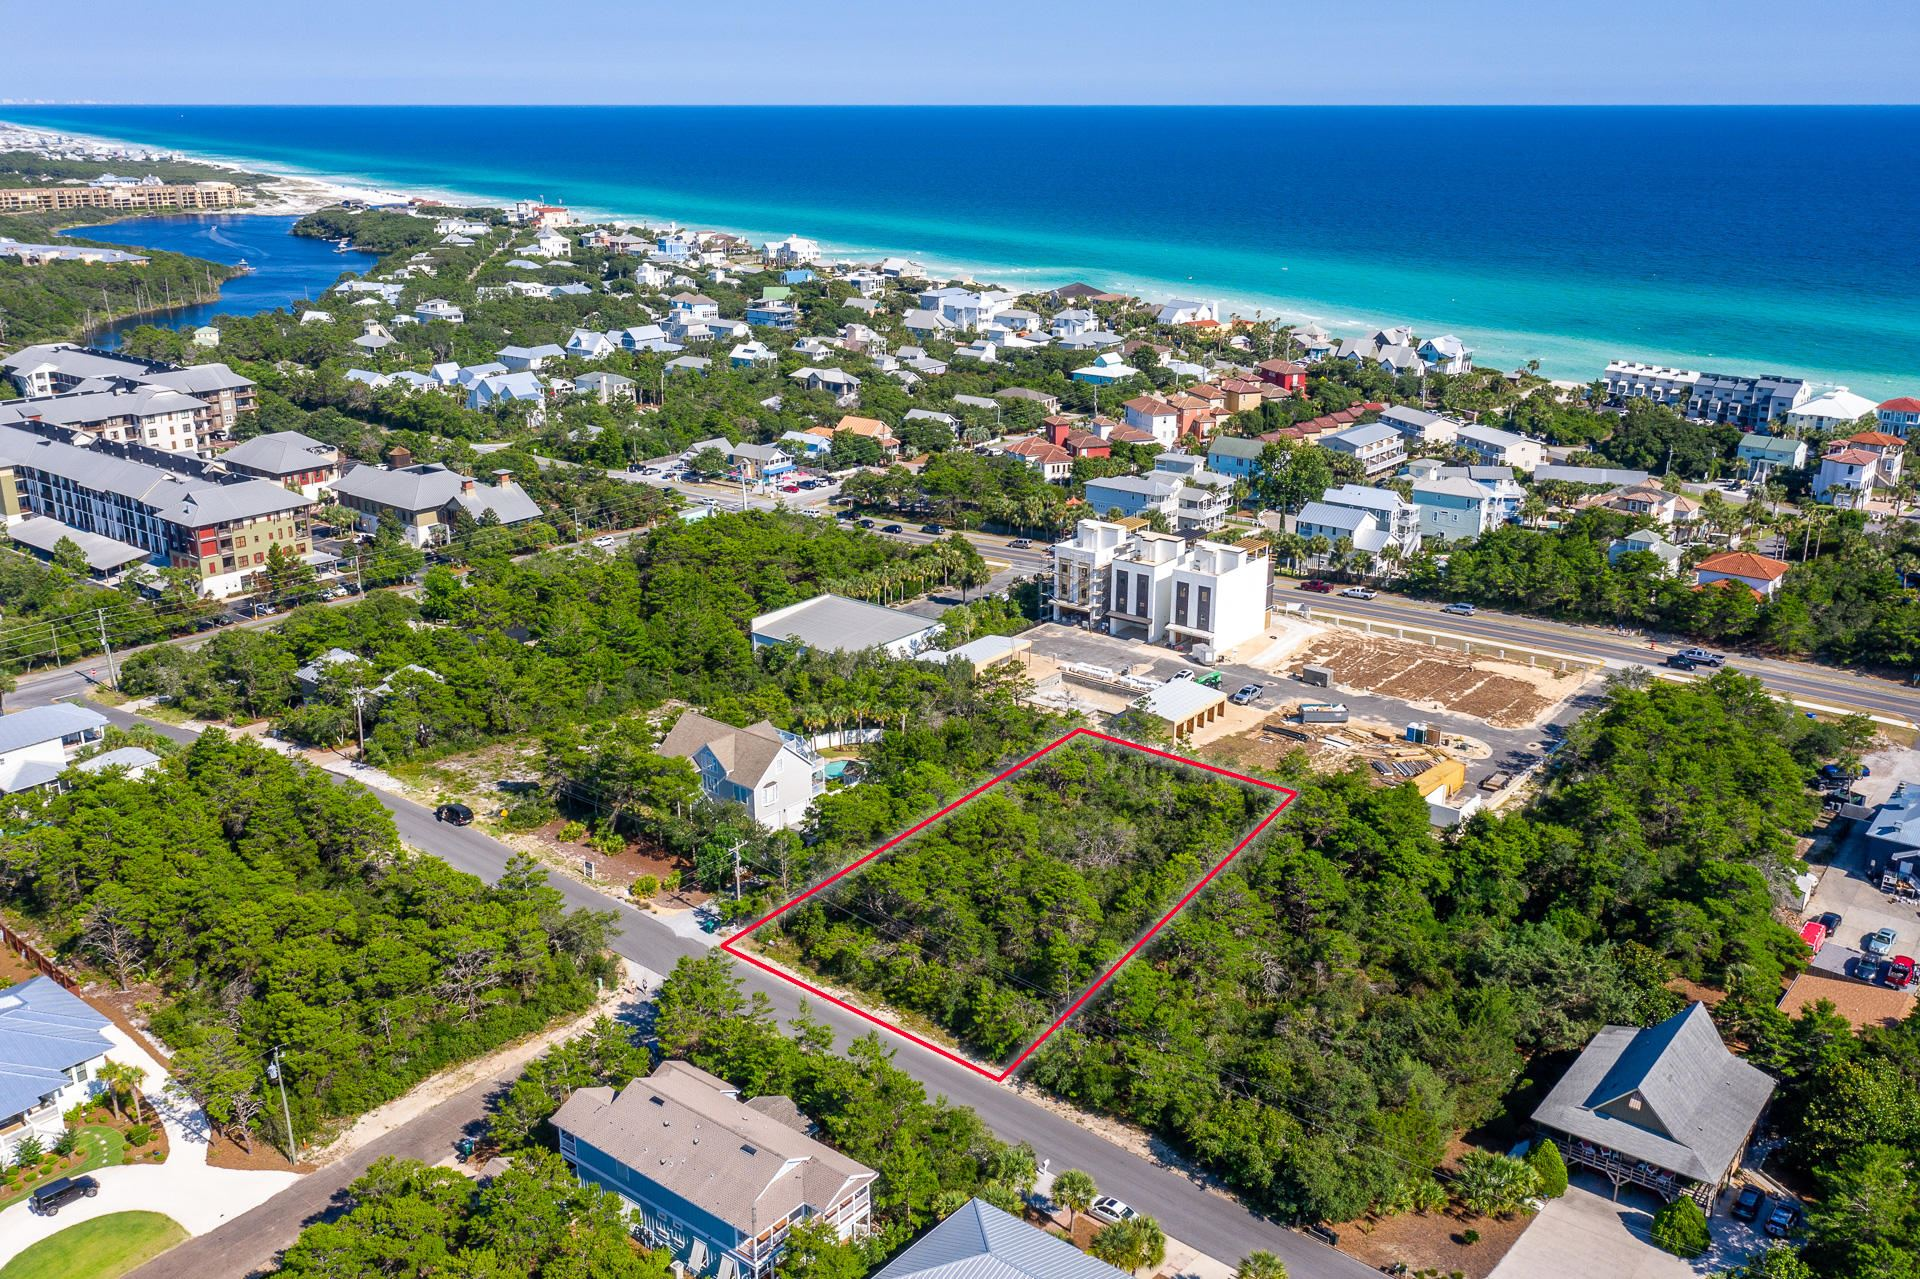 Property Image Of Lot 18 Rolling Dunes Drive In Santa Rosa Beach, Fl